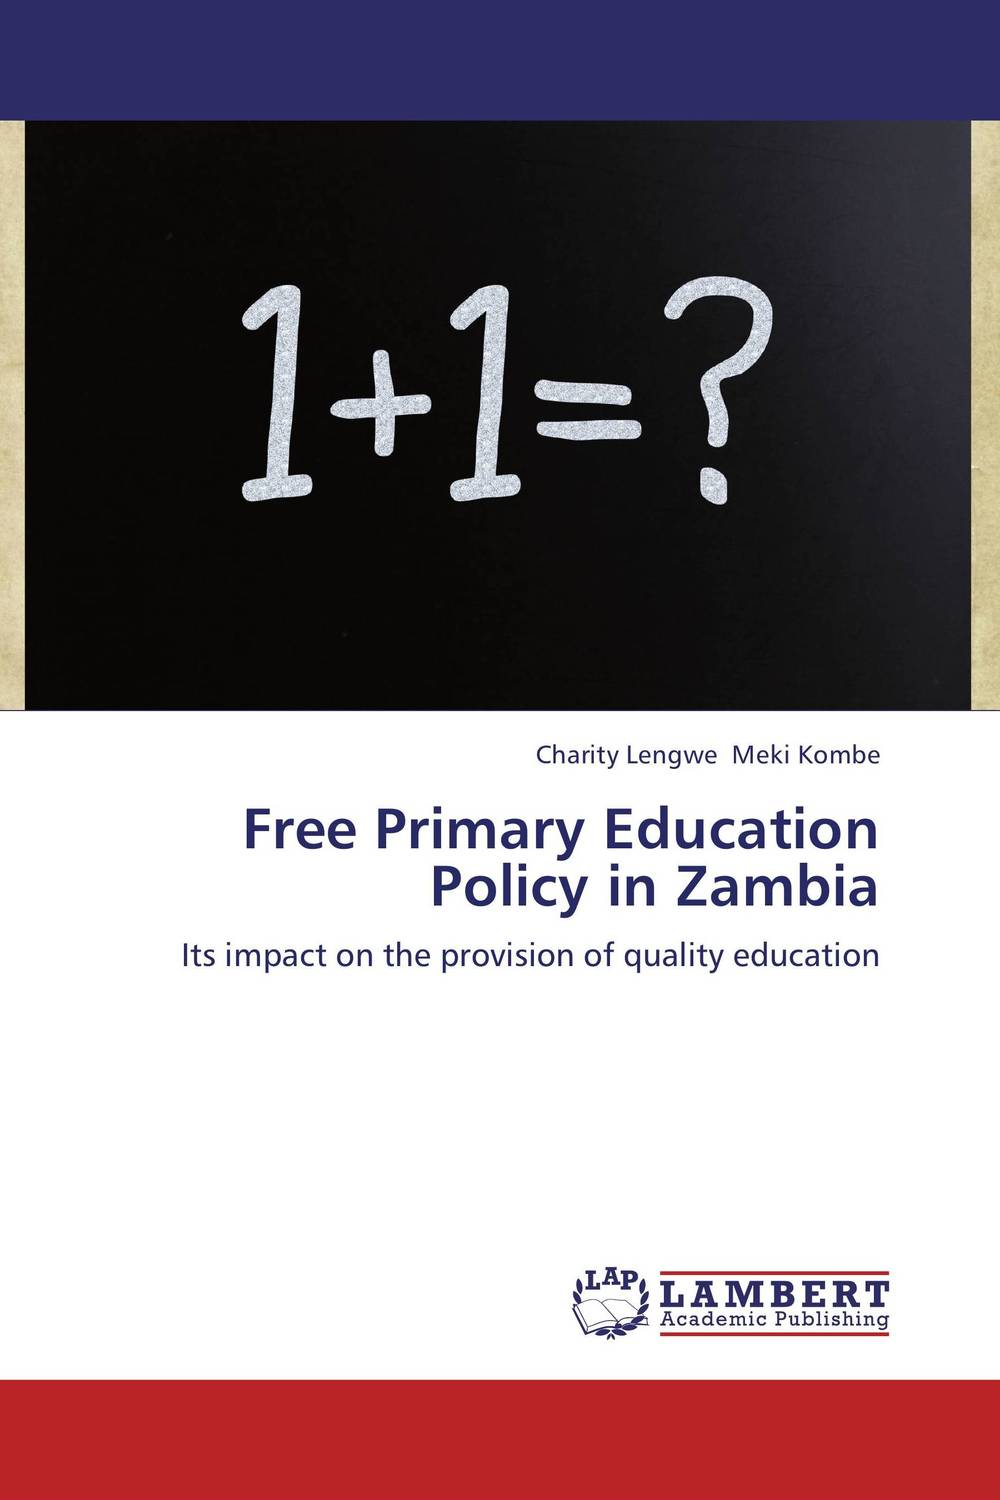 Free Primary Education Policy in Zambia use of role plays in teaching english in primary schools